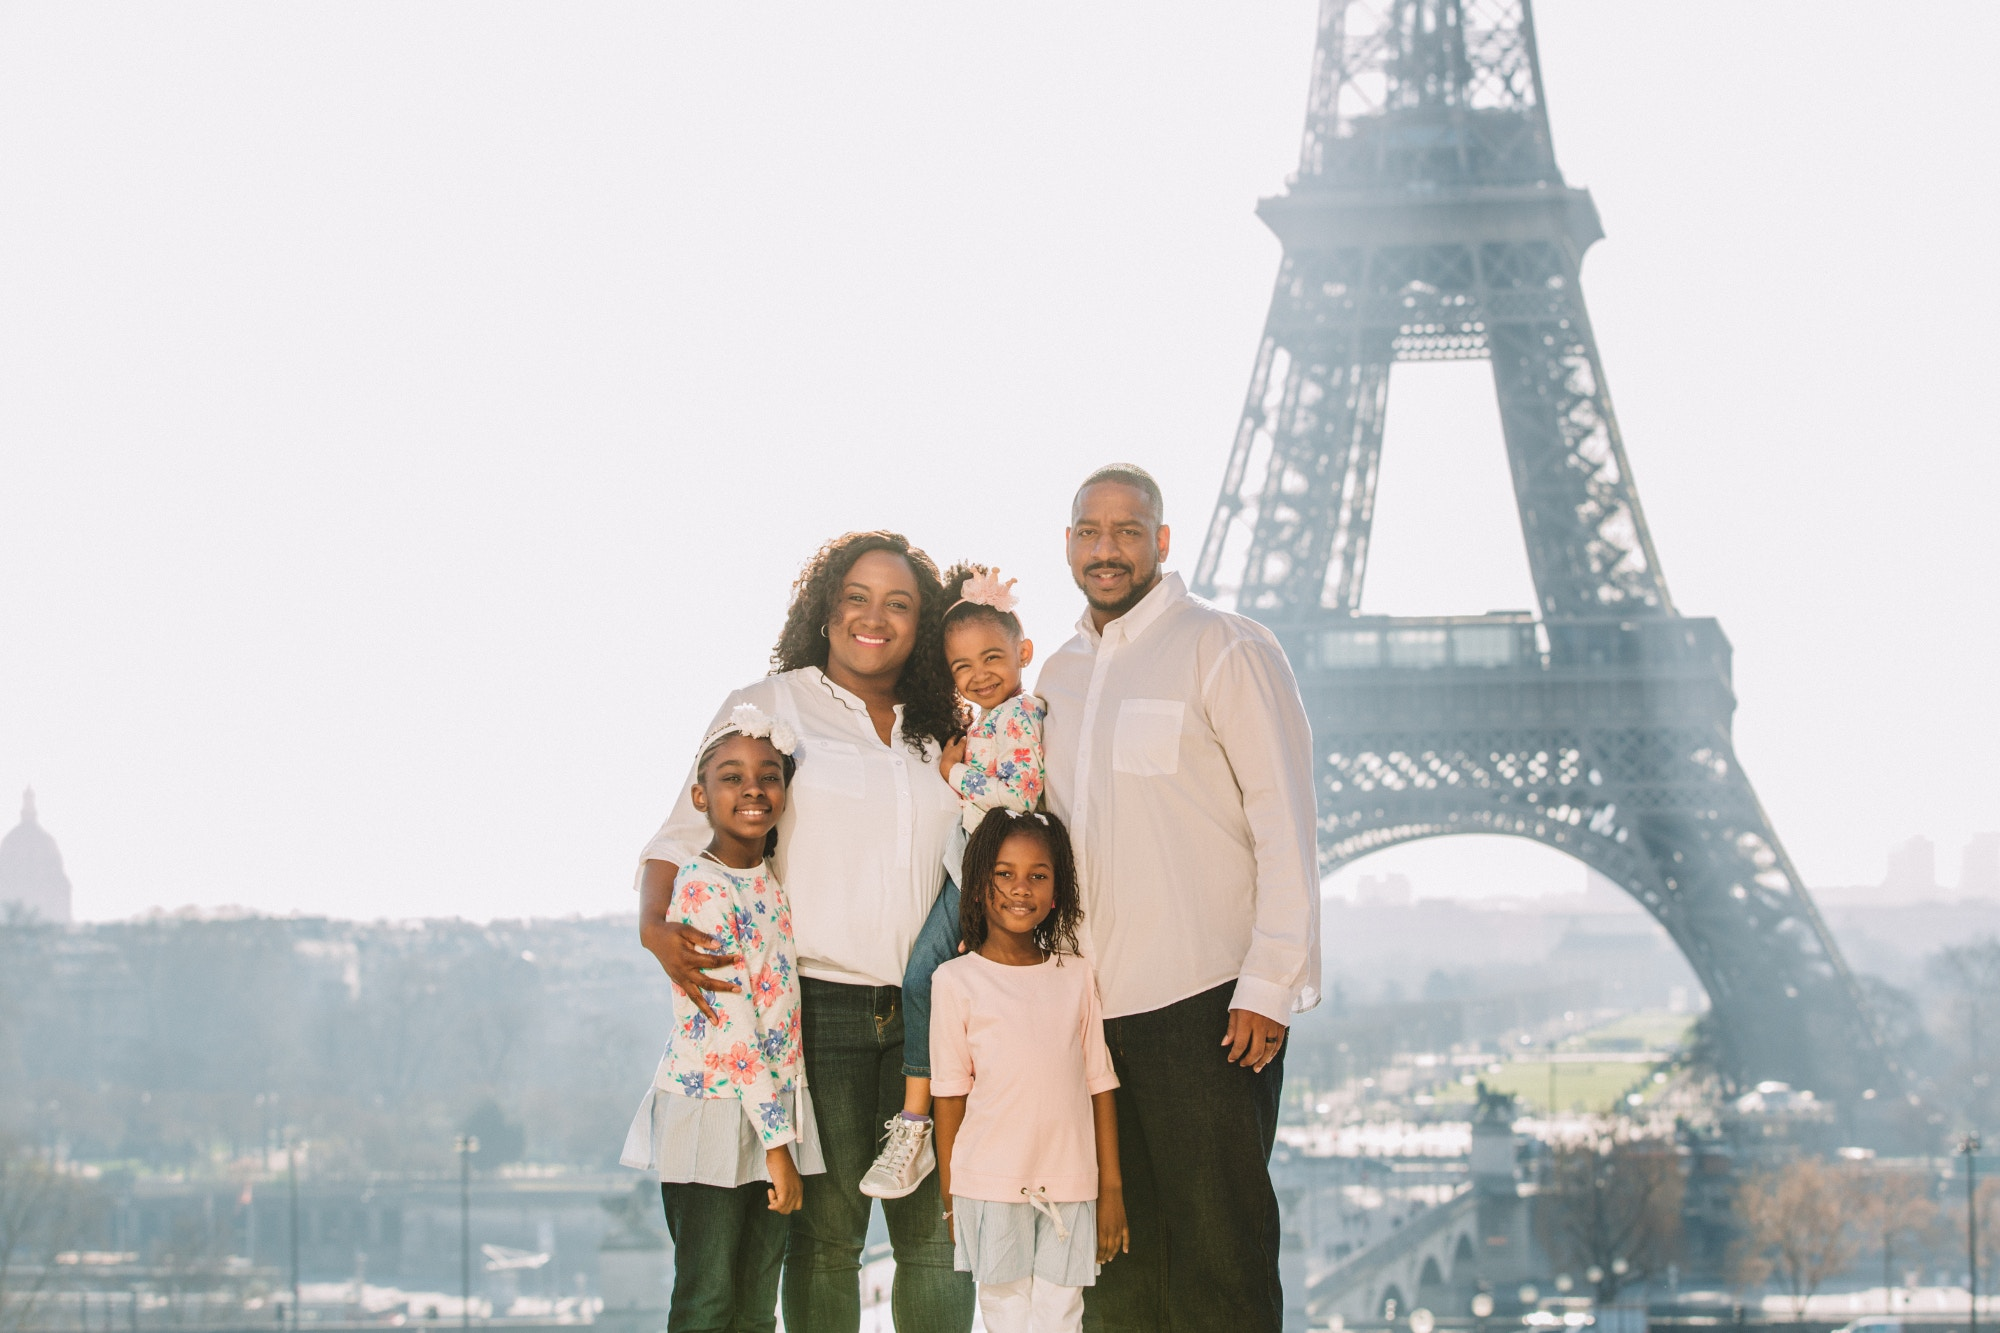 The Spring Break Family in front of the Eiffel Tower, Paris, France © the Spring Break Family